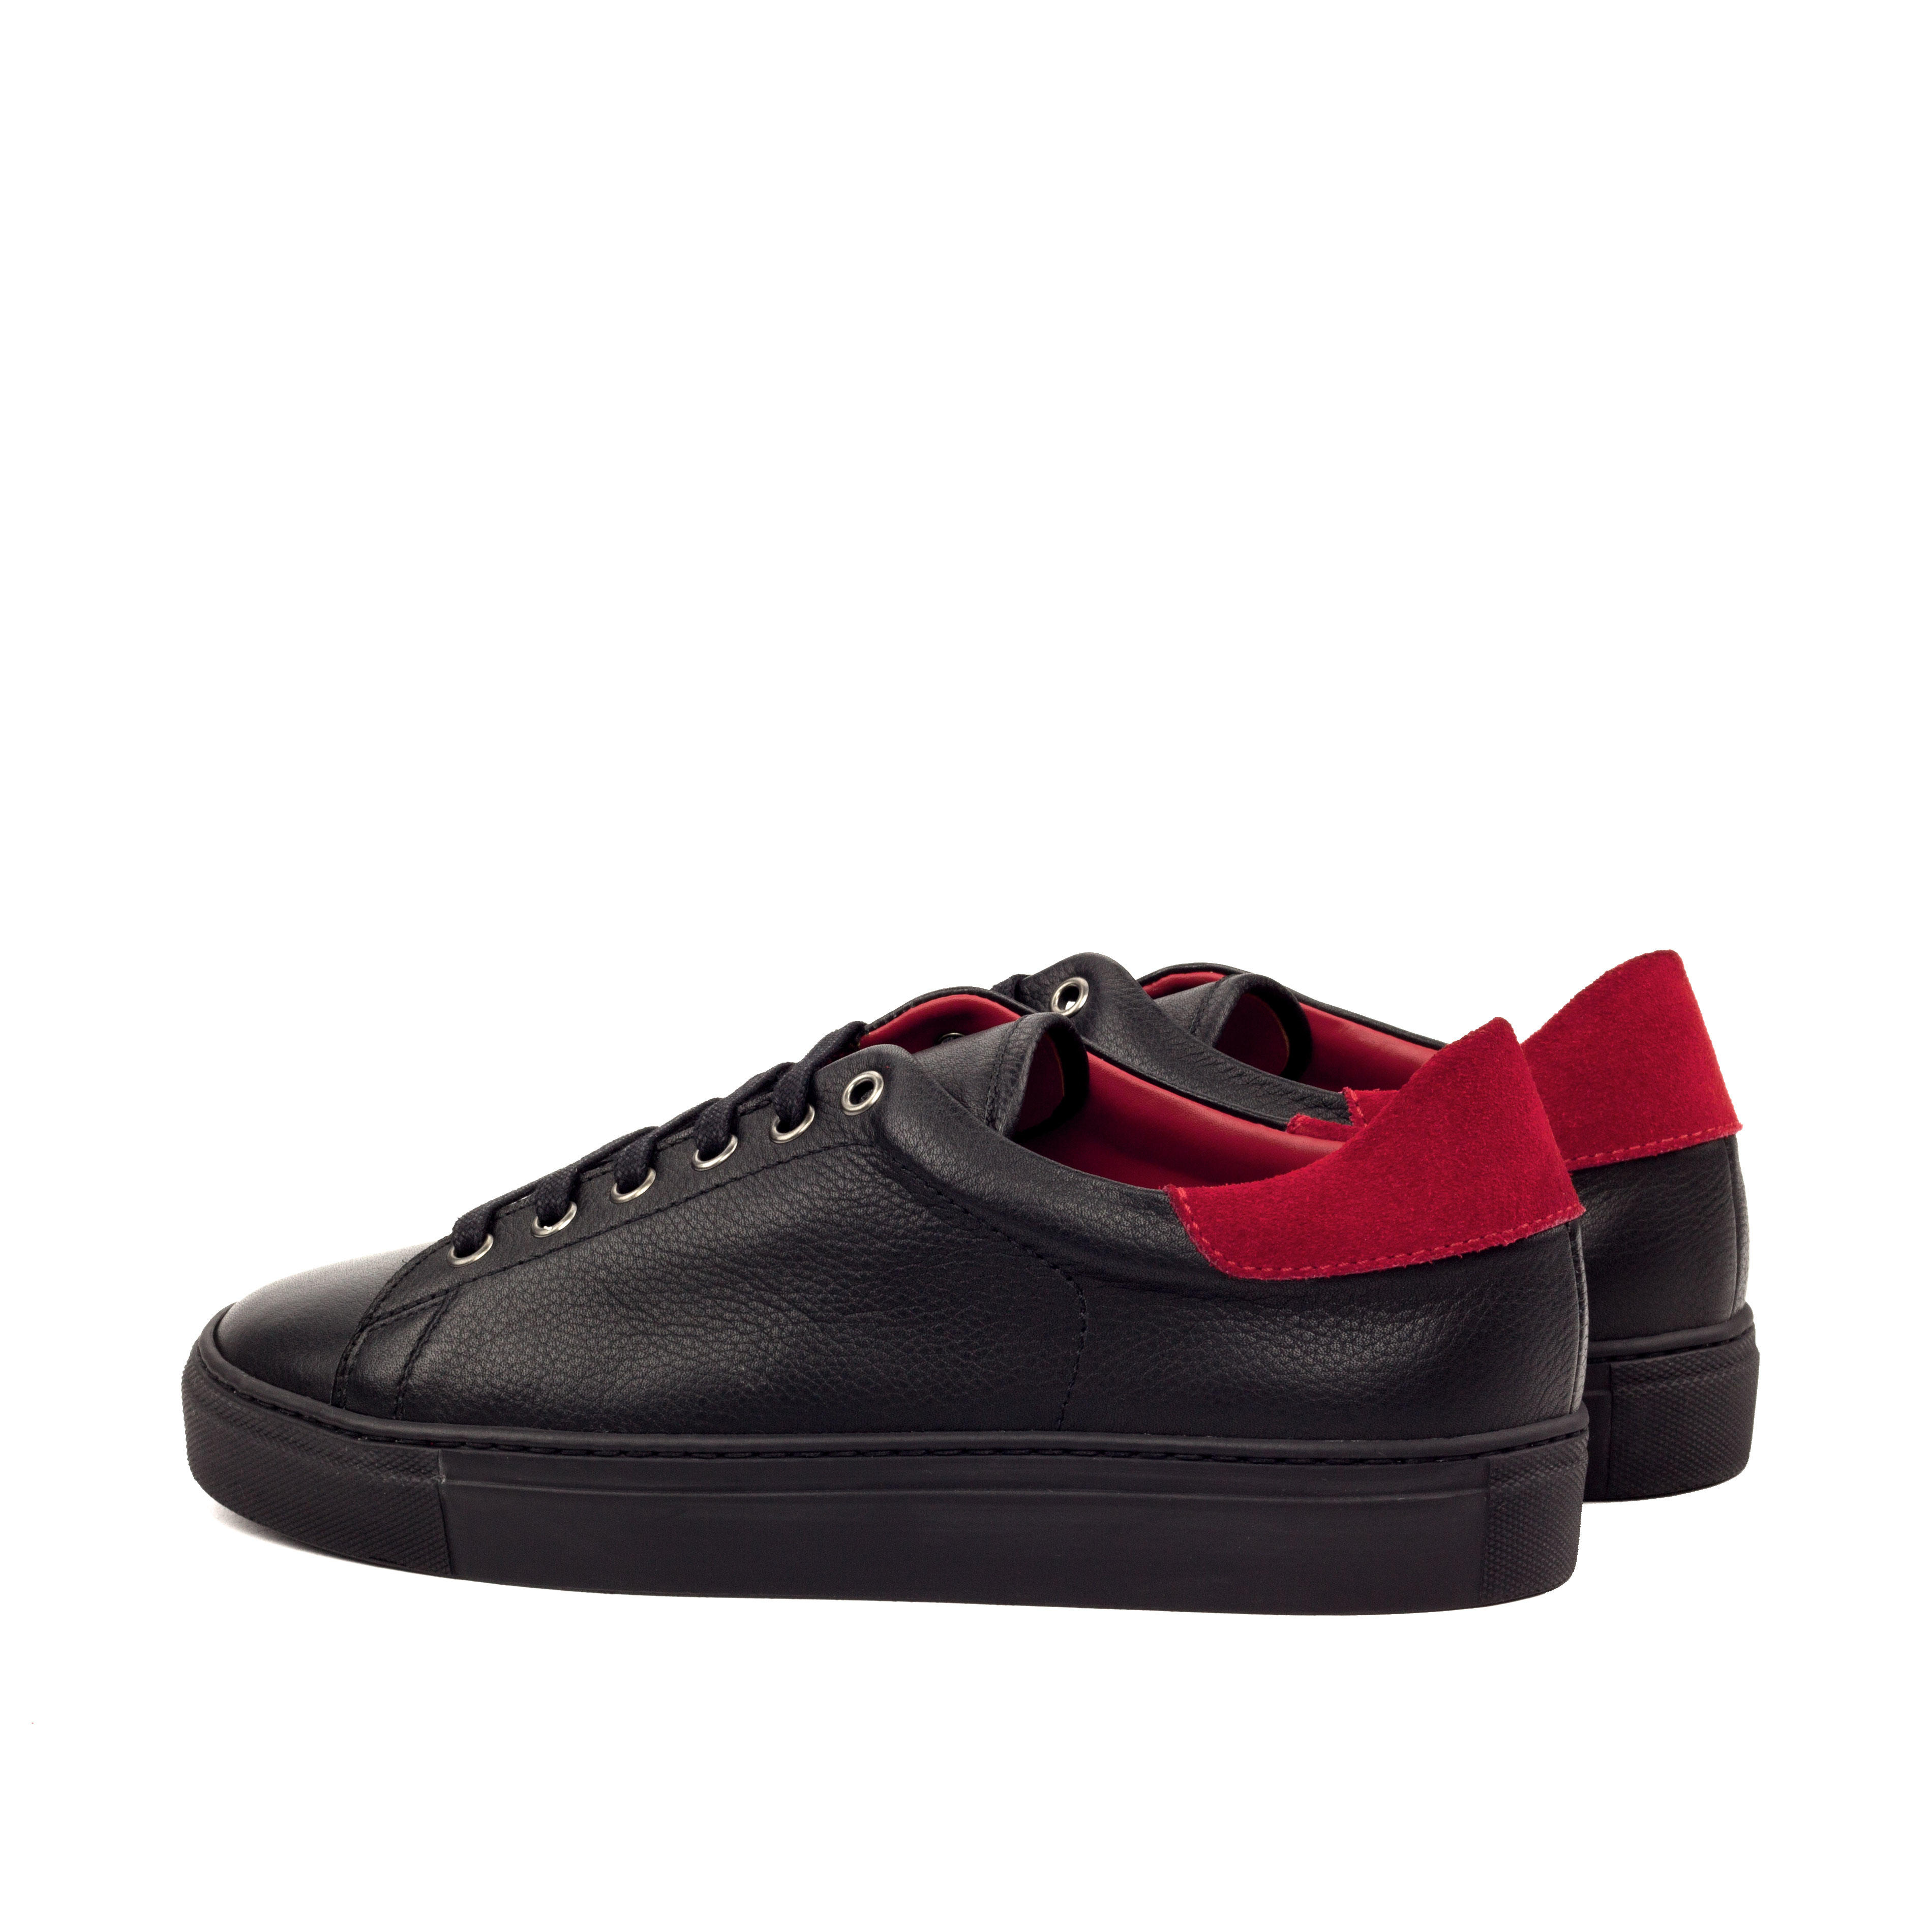 MANOR OF LONDON 'The Perry' Black Full Grain Tennis Trainer Luxury Custom Initials Monogrammed Back Side View